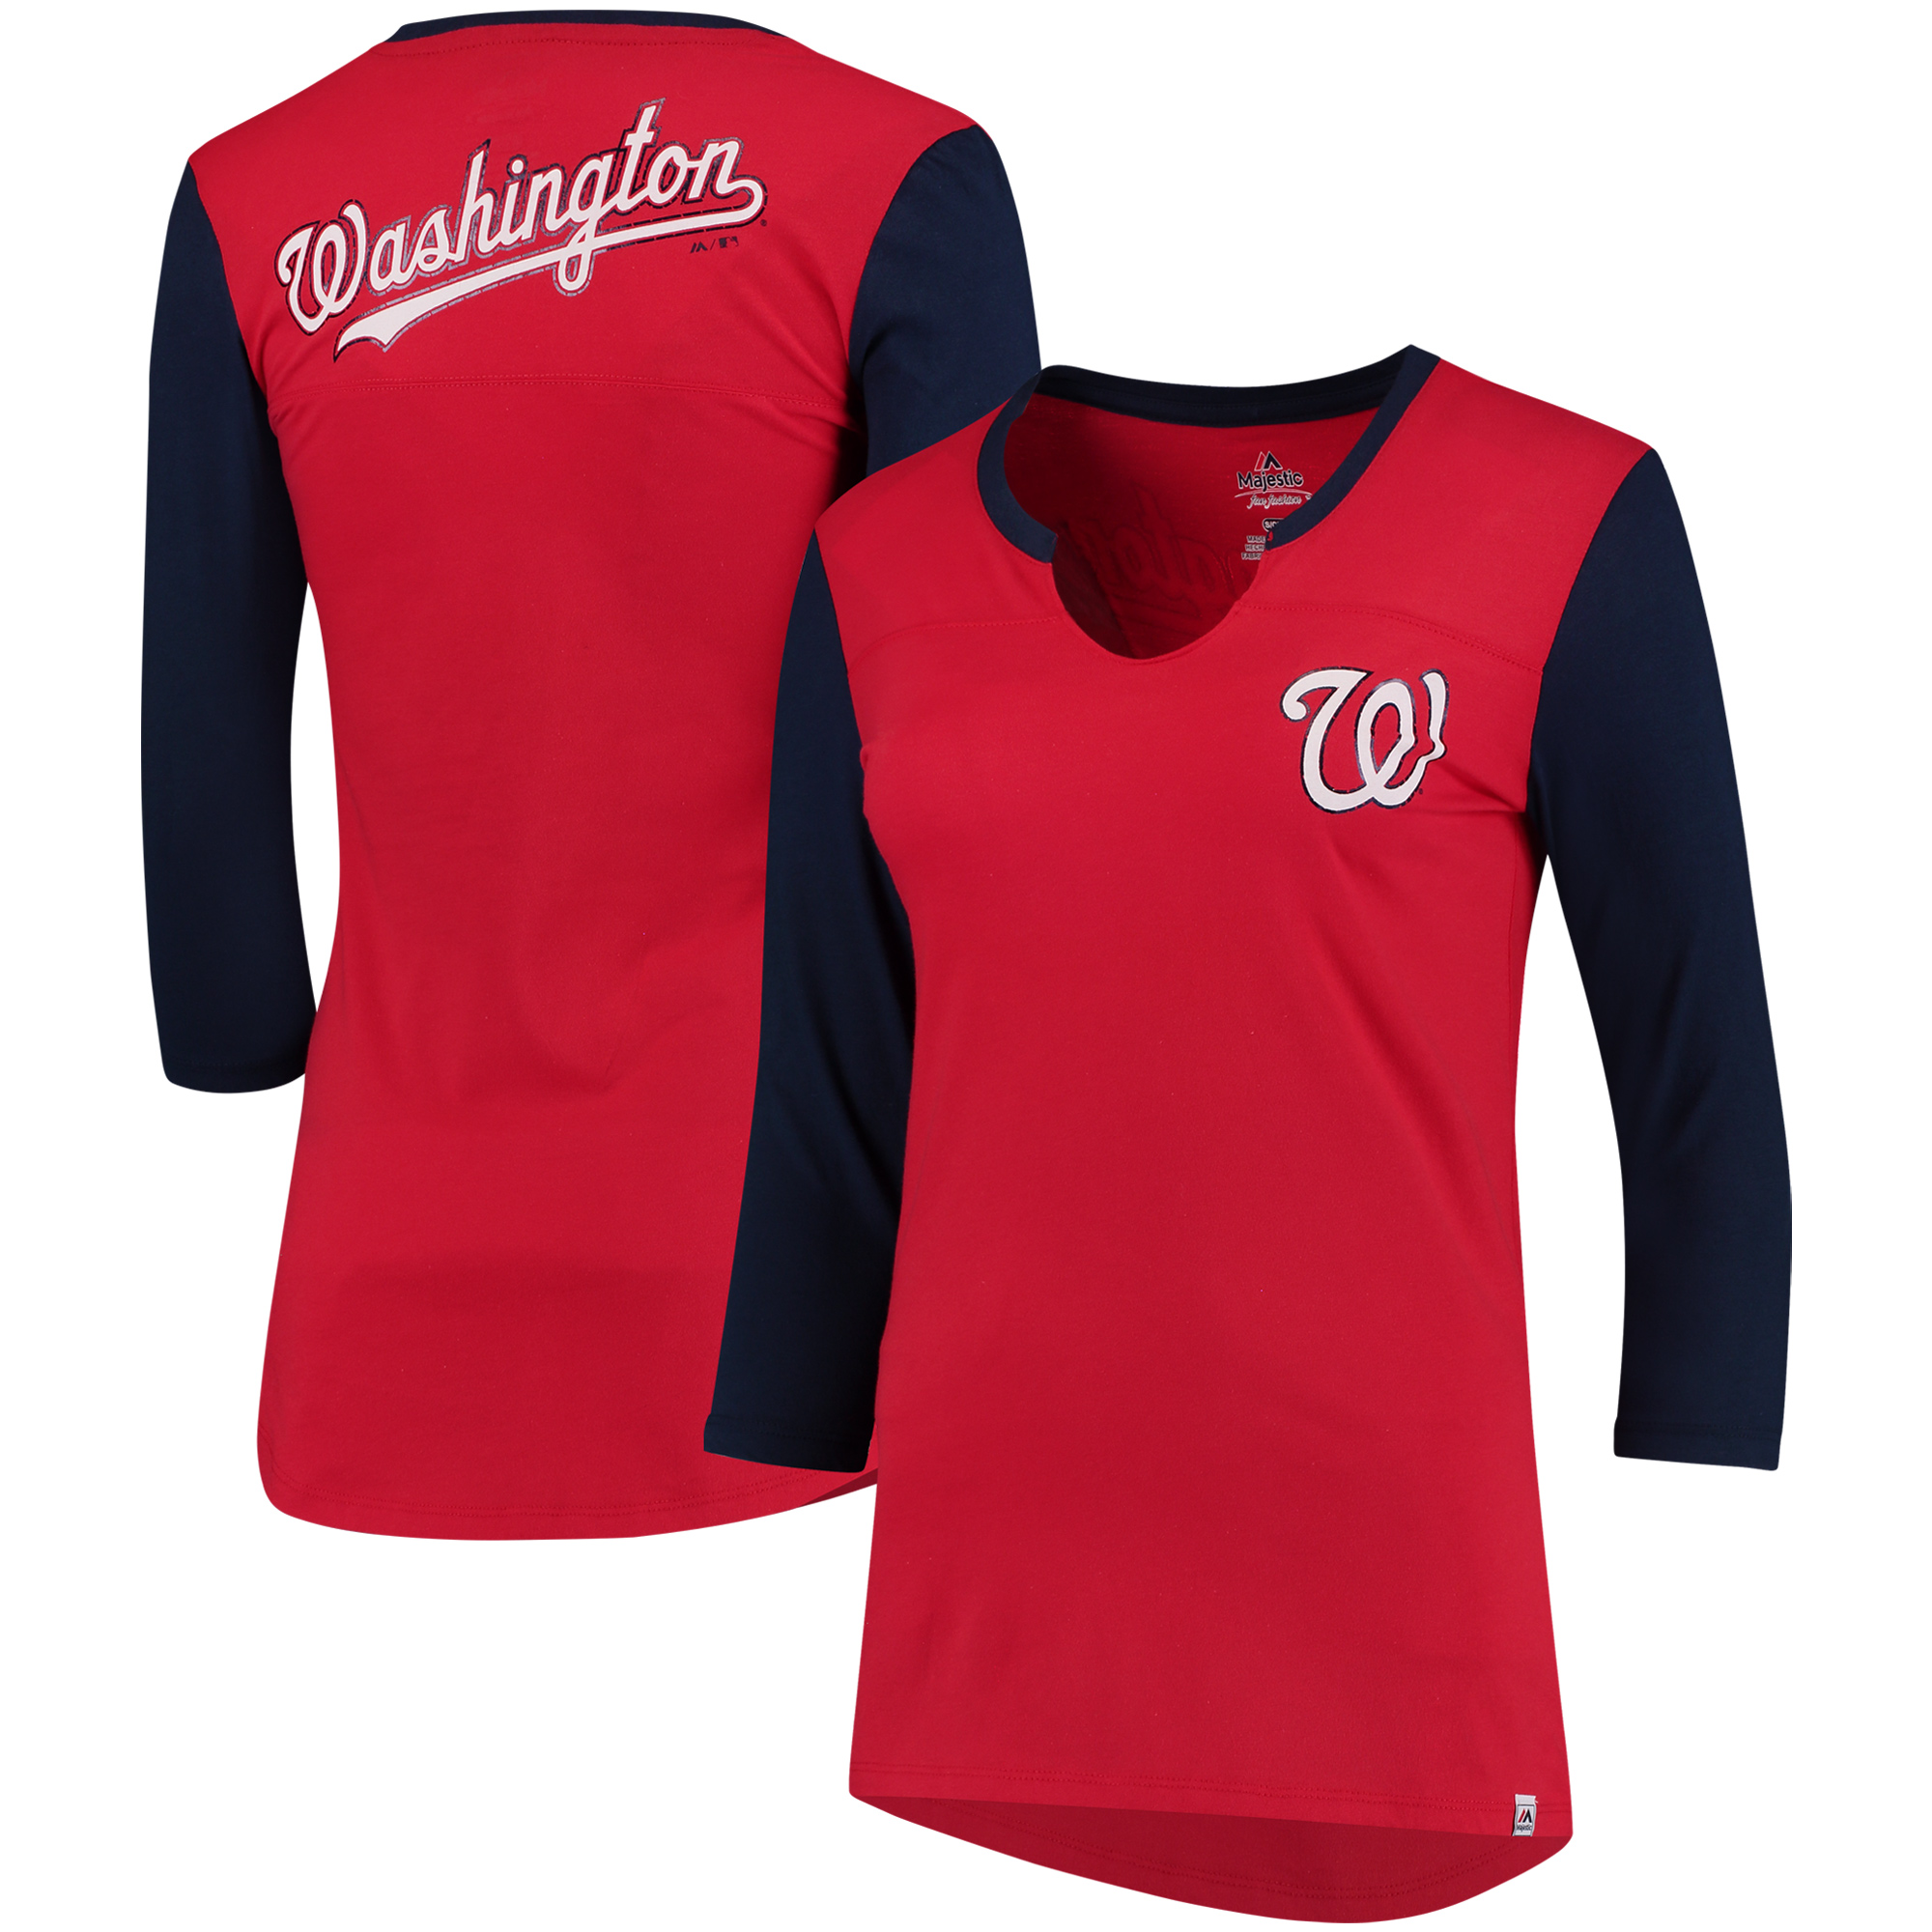 Washington Nationals Majestic Women's Above Average Three-Quarter Sleeve V-Notch T-Shirt - Red/Navy